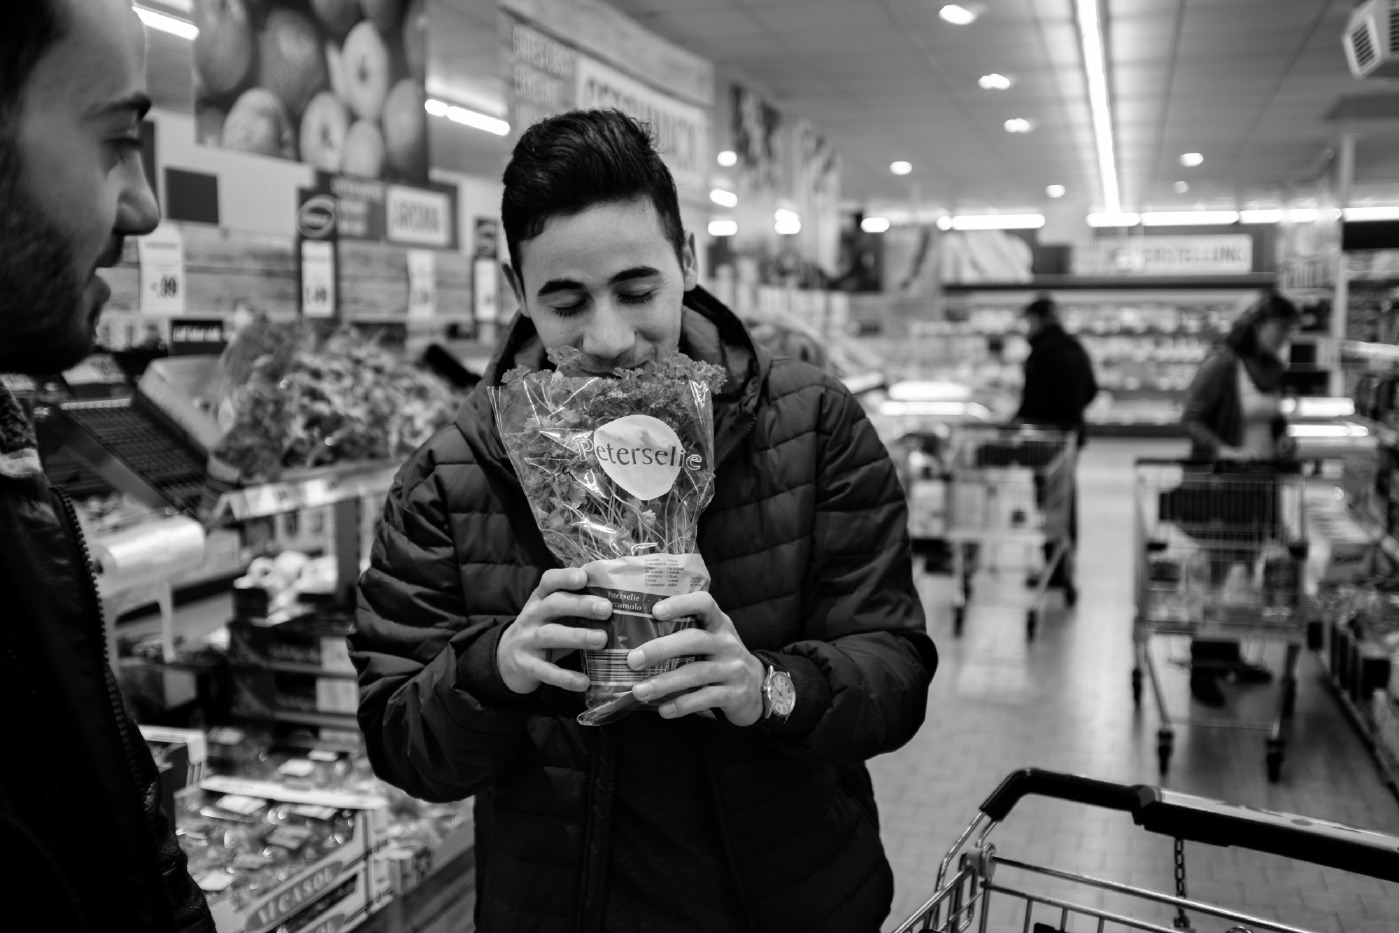 Syrian refugees Mohamad and Hani Al Masalmeh, both resident in Germany, buy spices at the supermarket. Warstein, Germany 2016. © Matteo Bastianelli